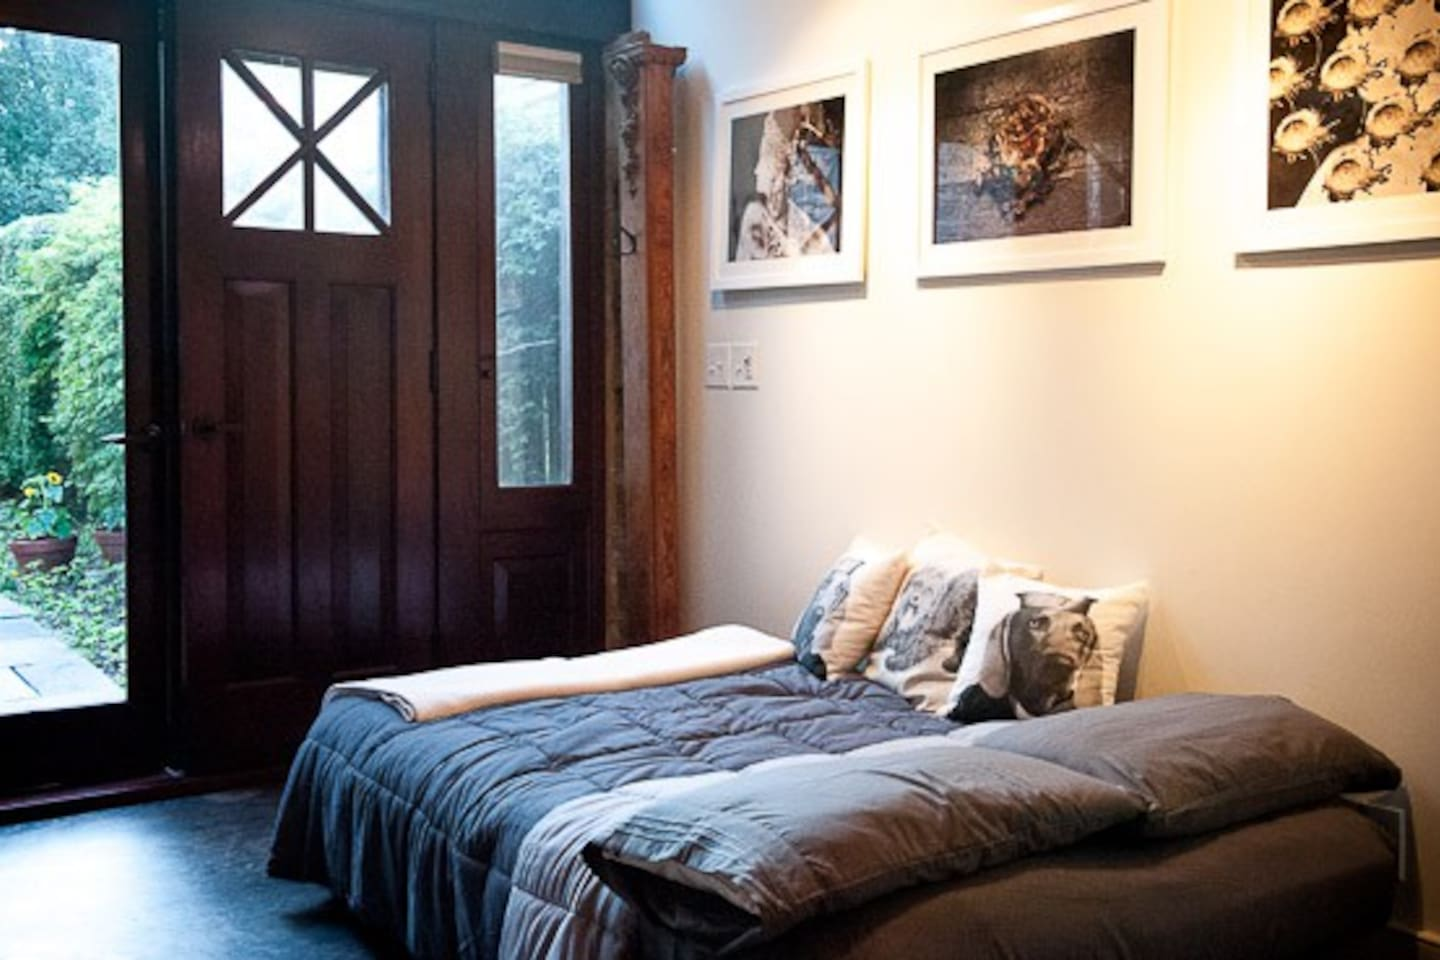 Comfortable studio space with abundant available light.